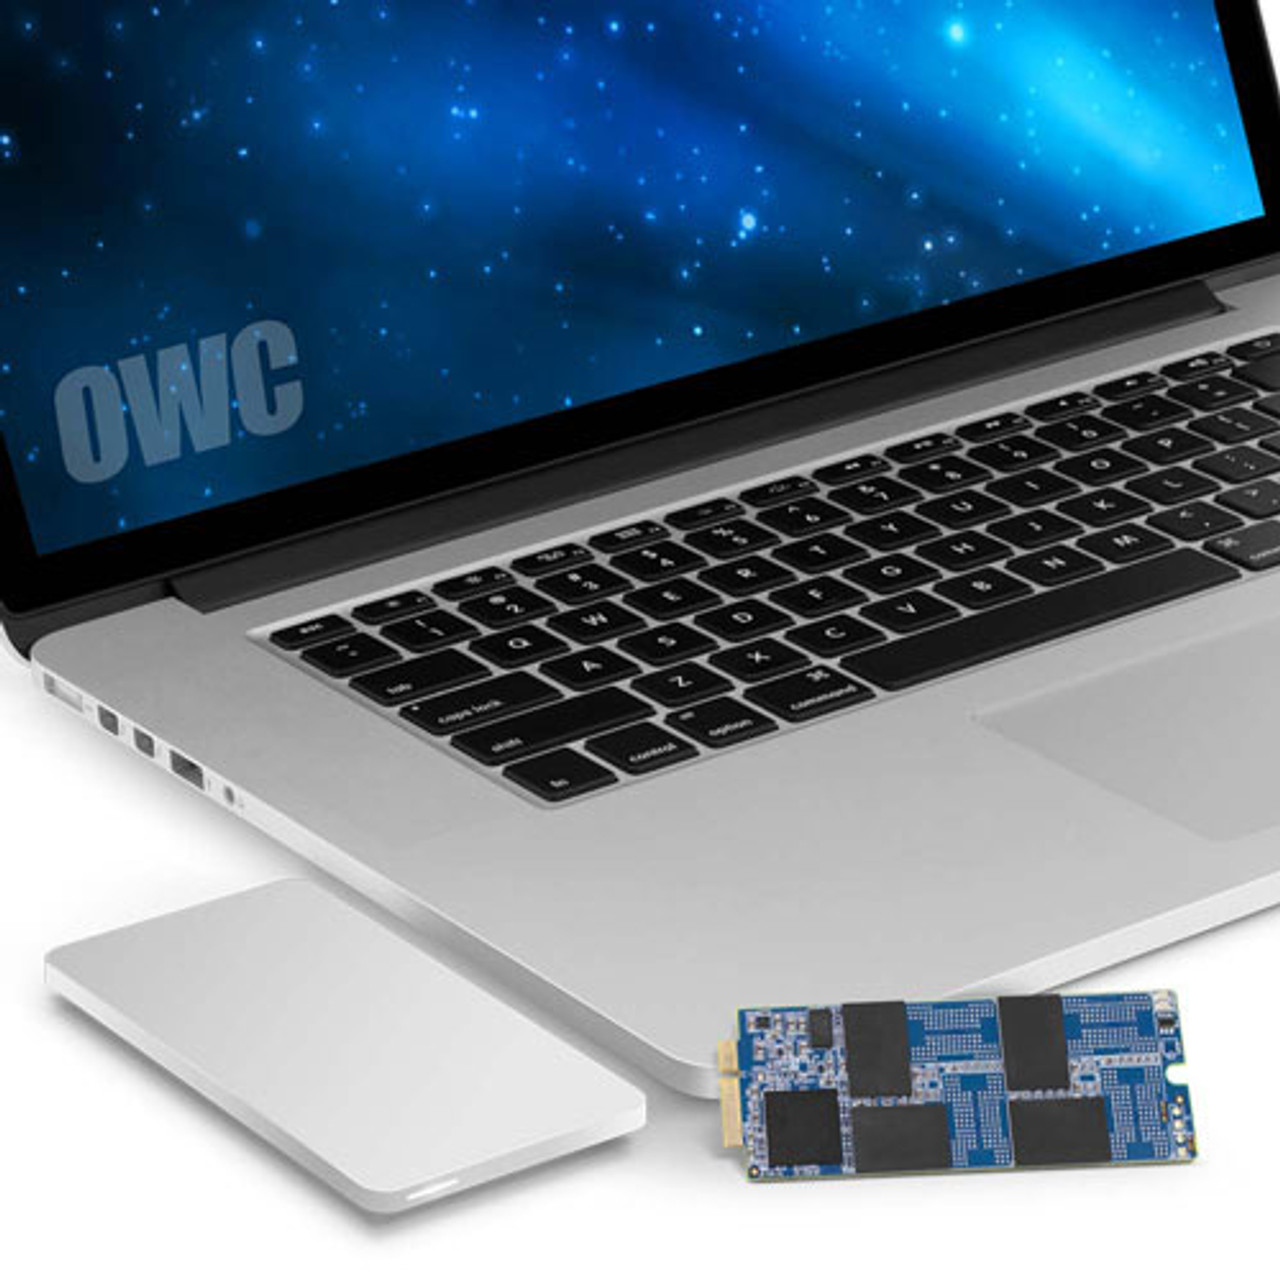 Upgrade Kit for MacBook Pro with Retina Display (2012 - Early 2013)